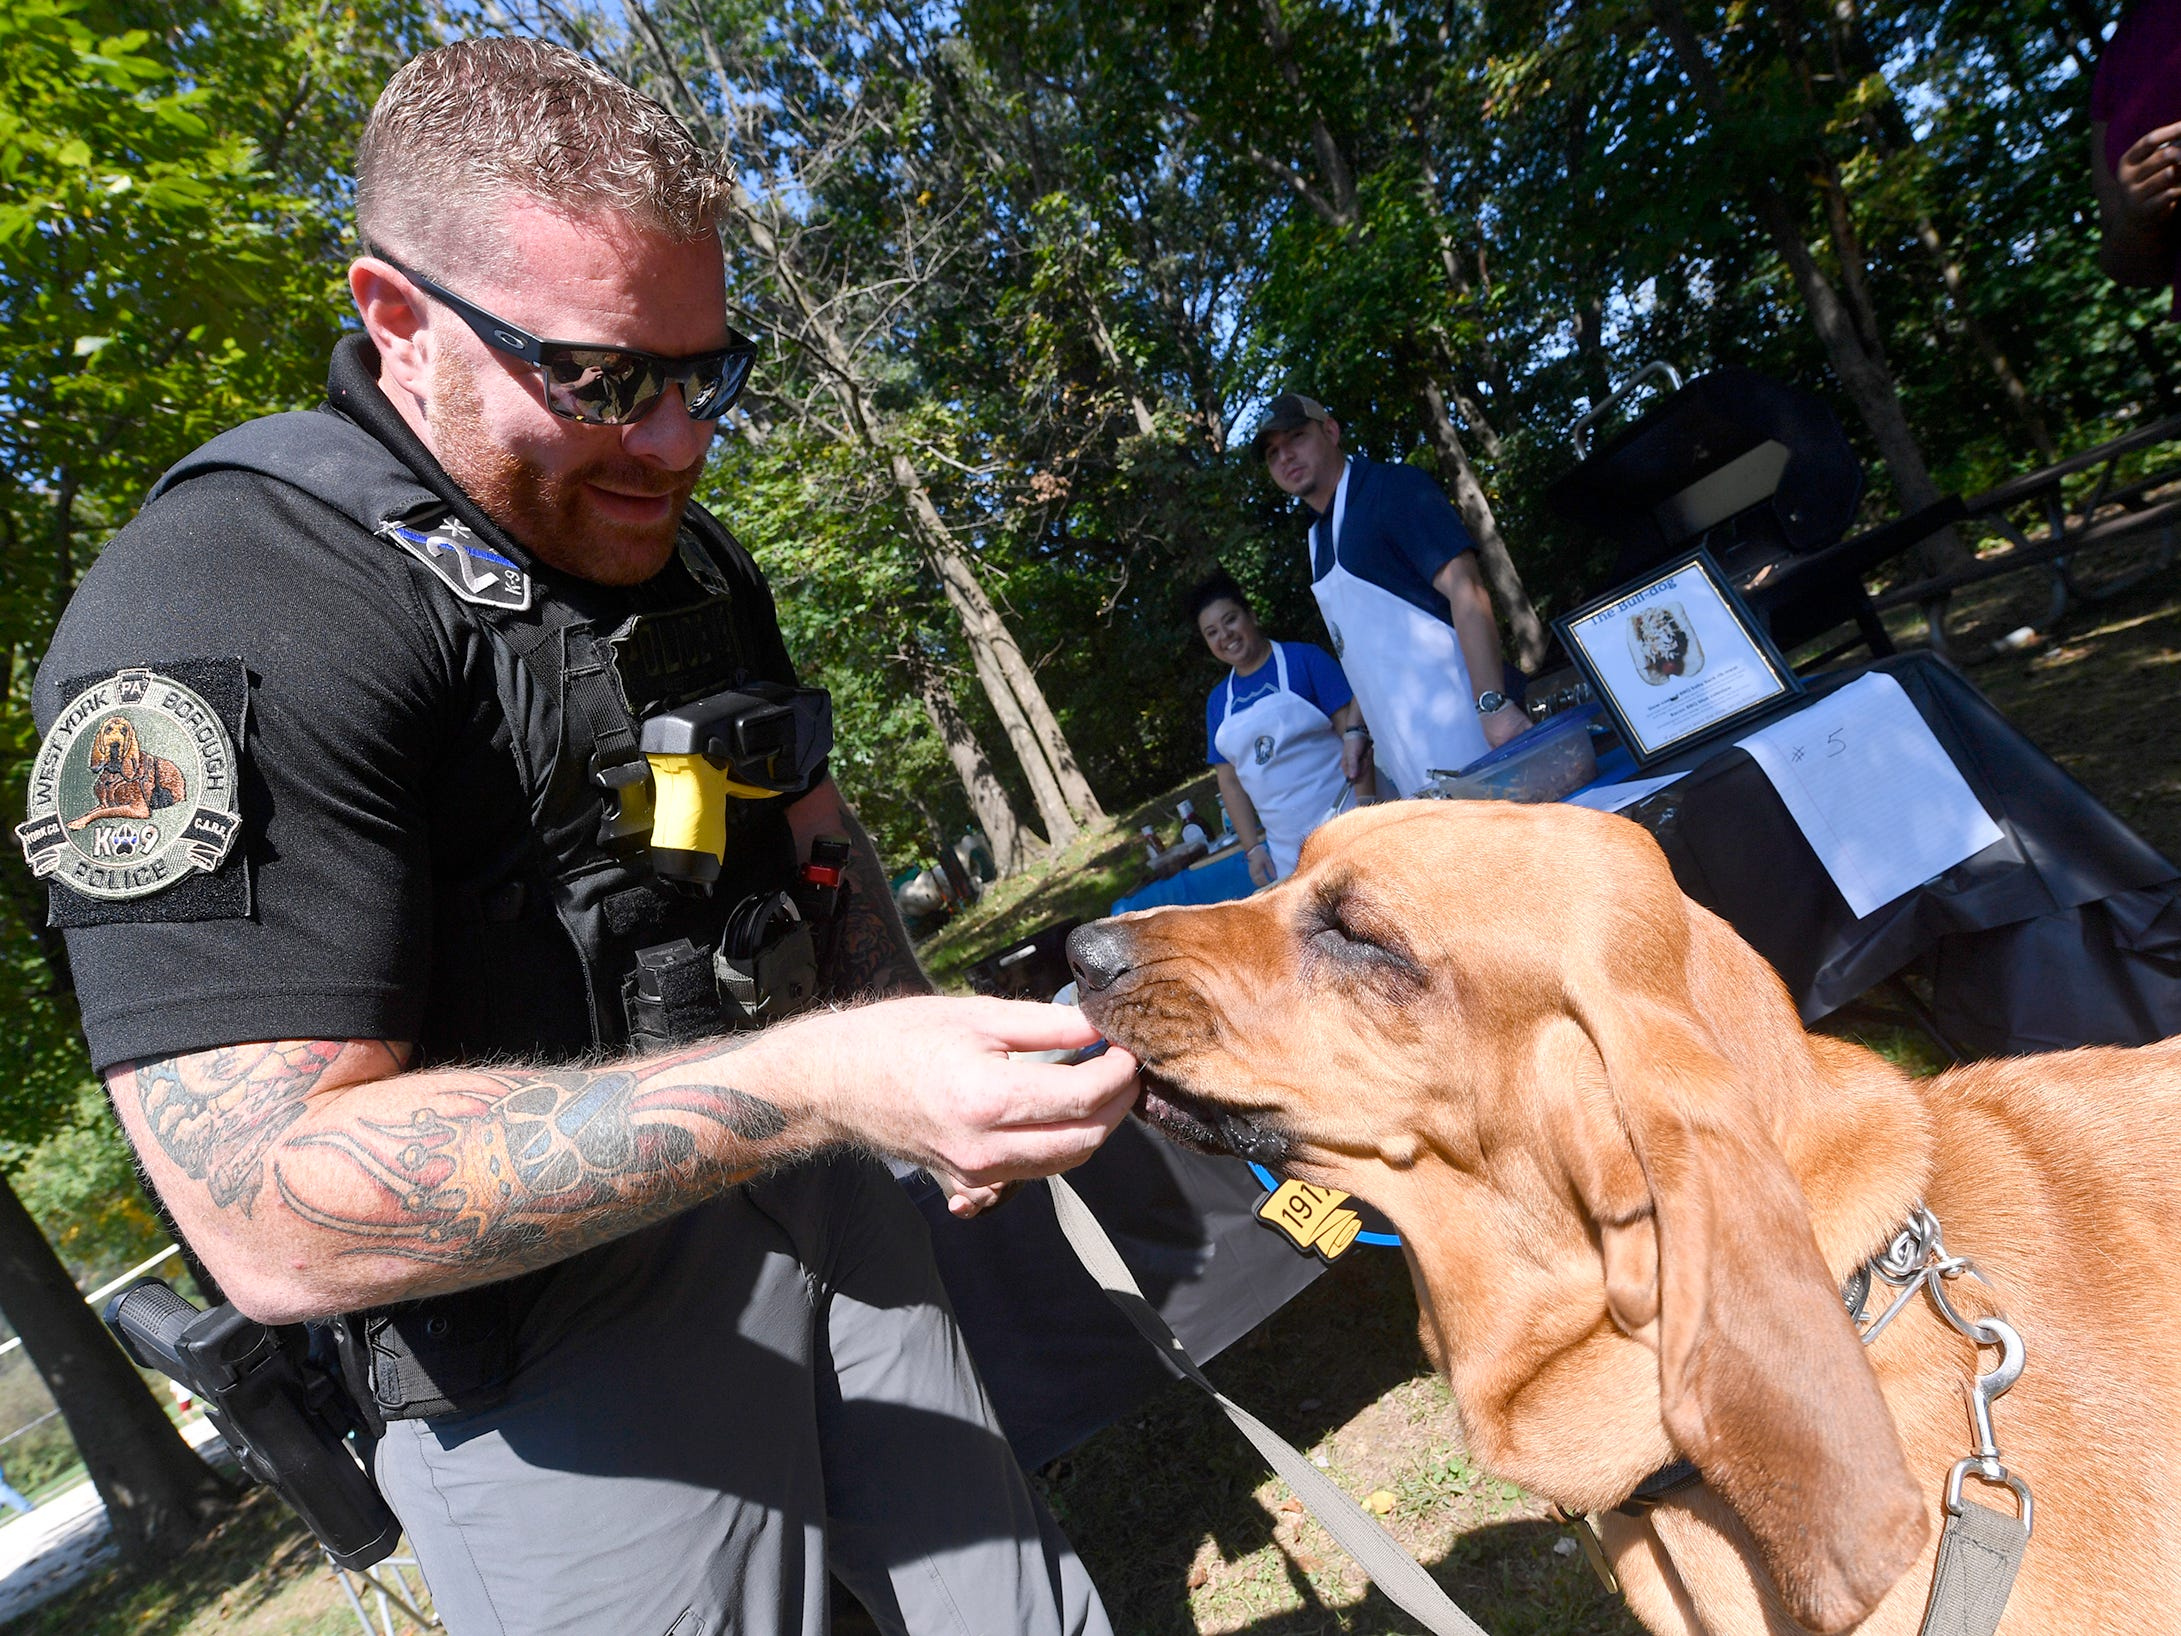 Detective Prince gets a hotdog sample from partner Scott Musselman of West York Borough Police as area law enforcement agencies take part in the first annual Top Dog Hotdog Contest, Sunday Oct. 7, 2018. John A. Pavoncello photo